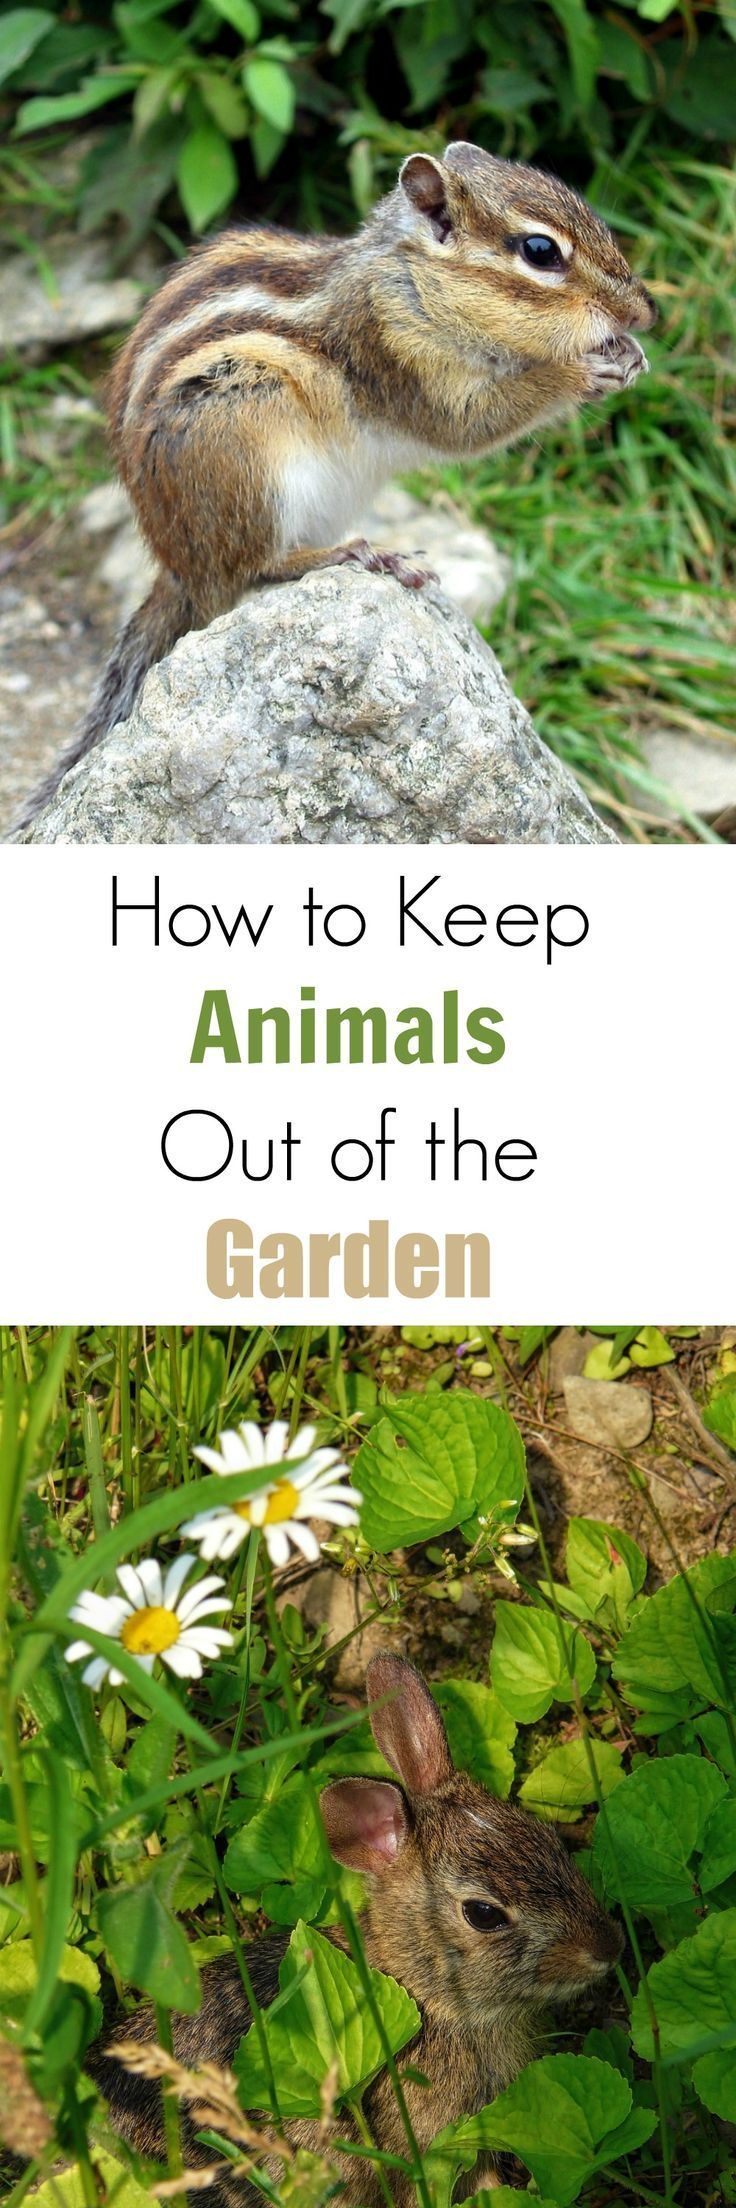 how to keep animals out of the garden - Garden Ideas To Keep Animals Out